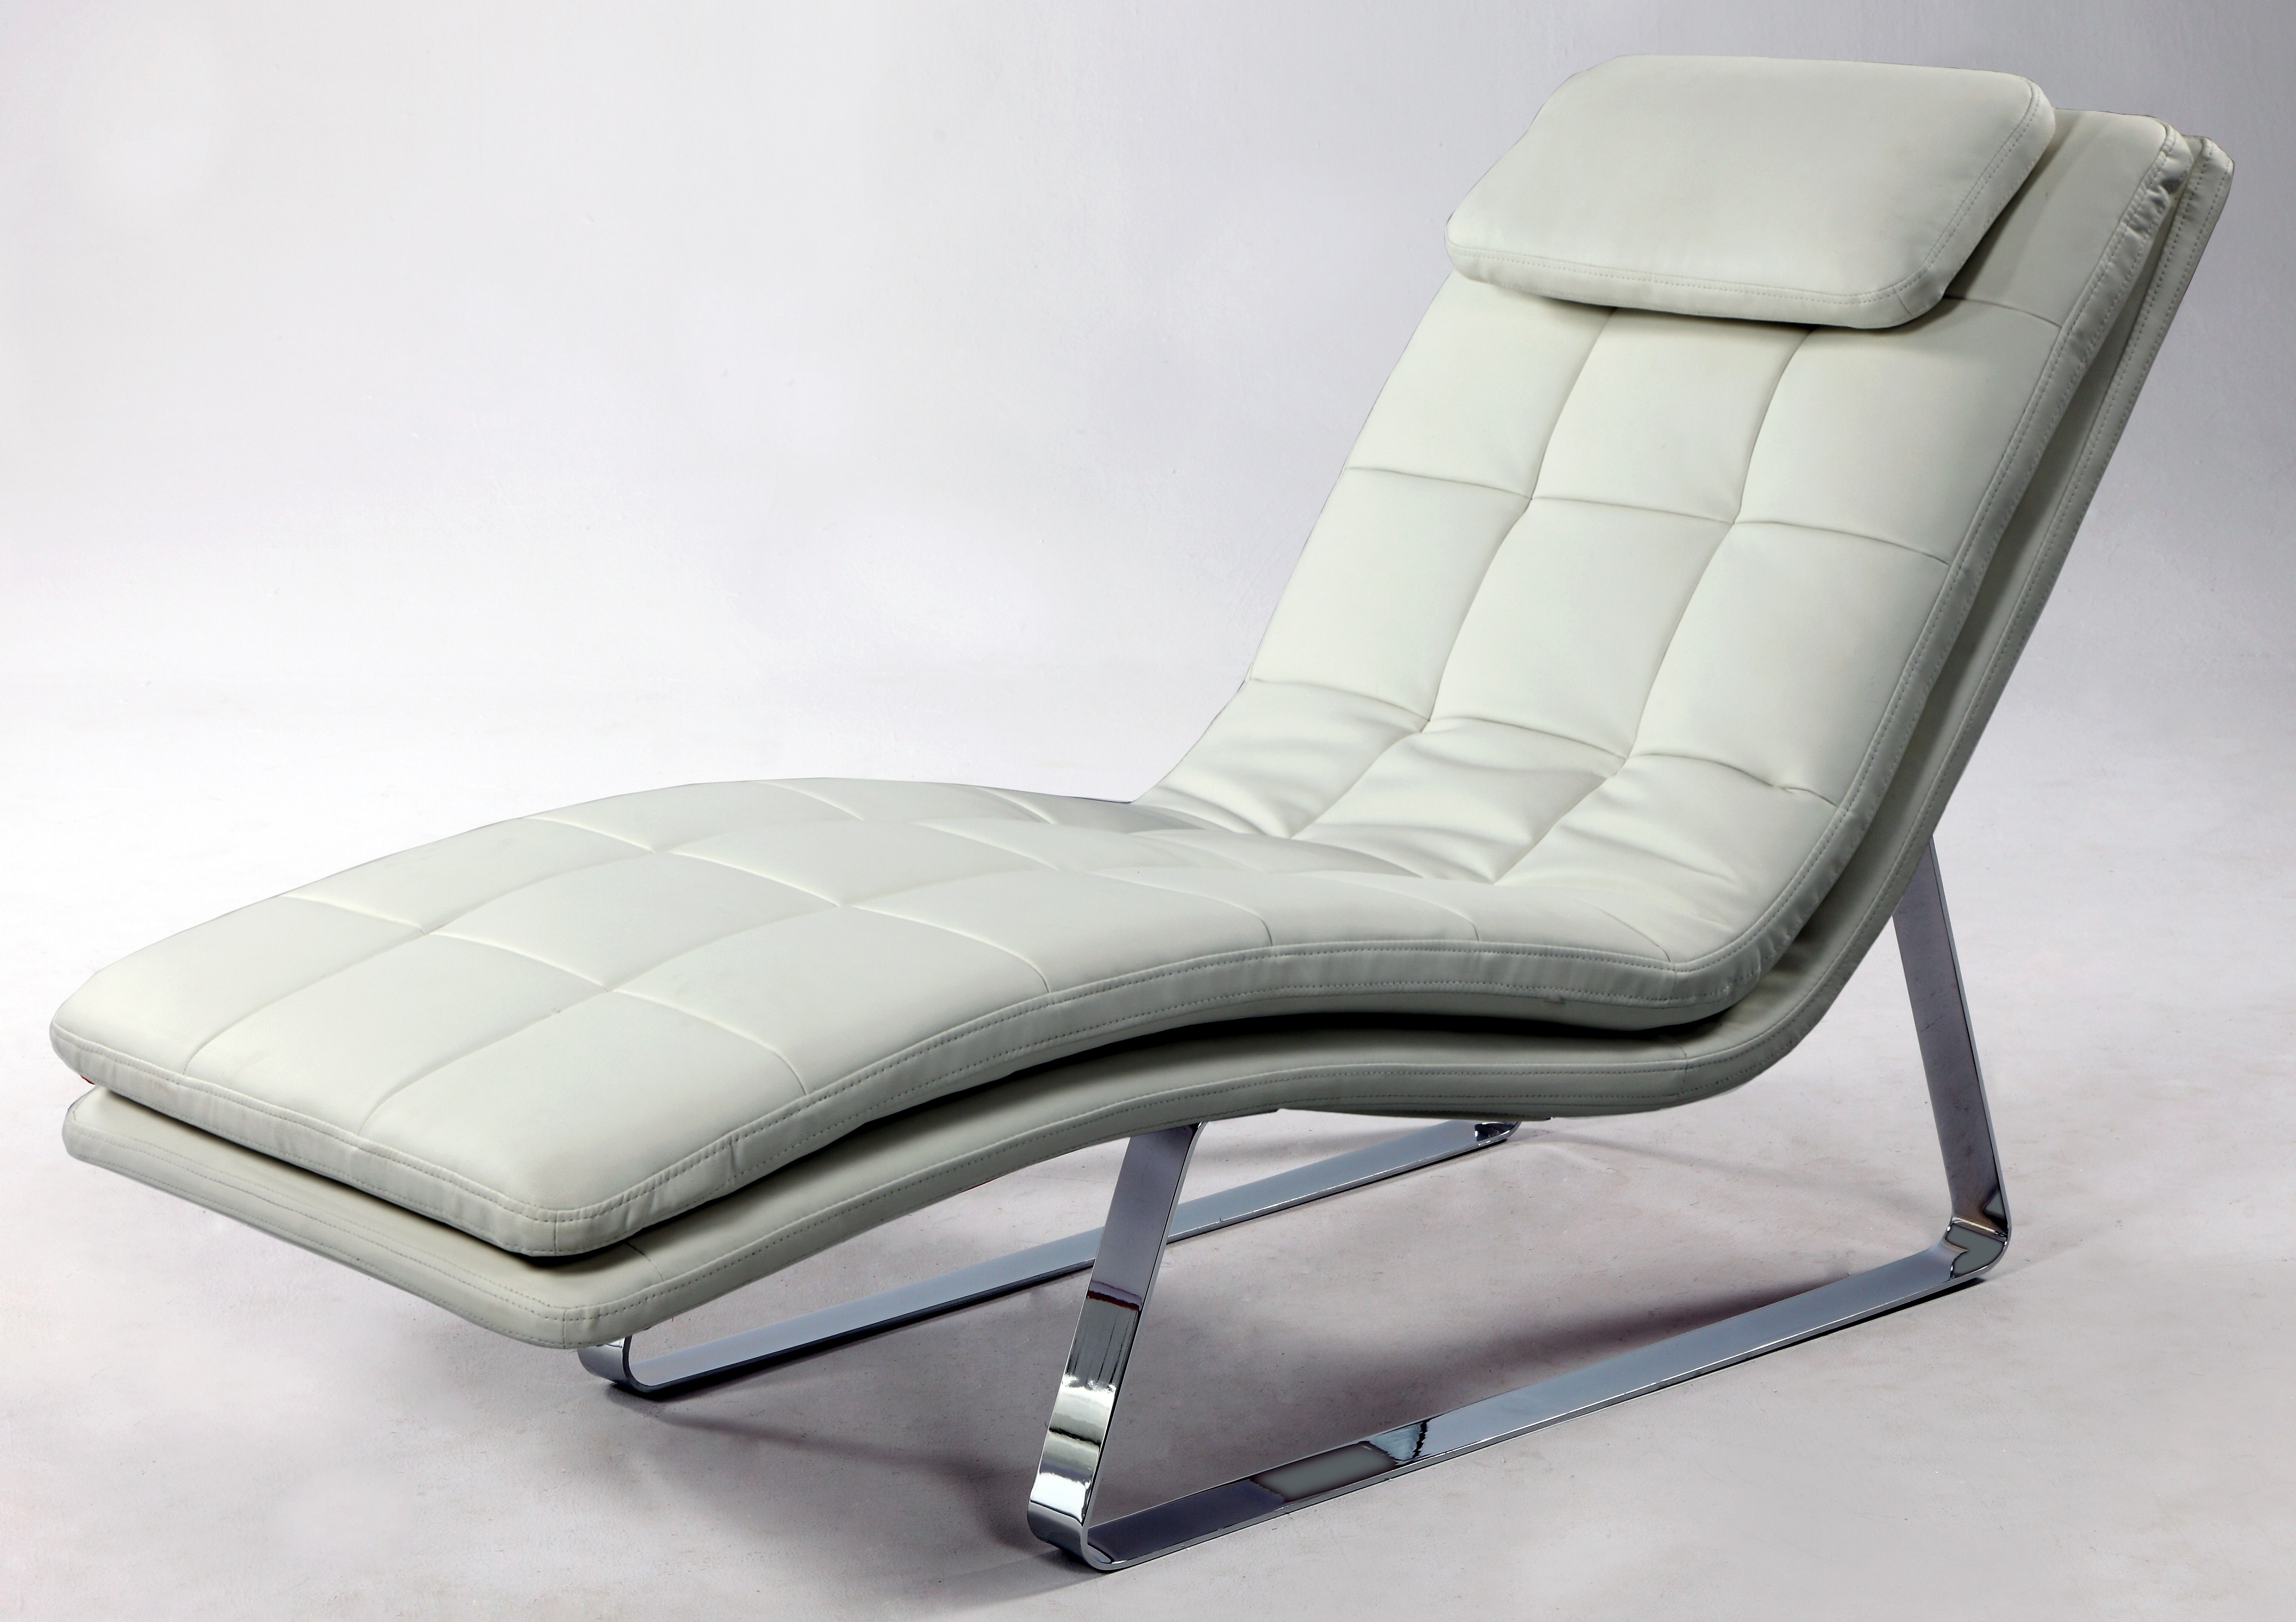 Well Liked Full Bonded Leather Tufted Chaise Lounge With Chrome Legs New York In Tufted Chaise Lounges (View 9 of 15)